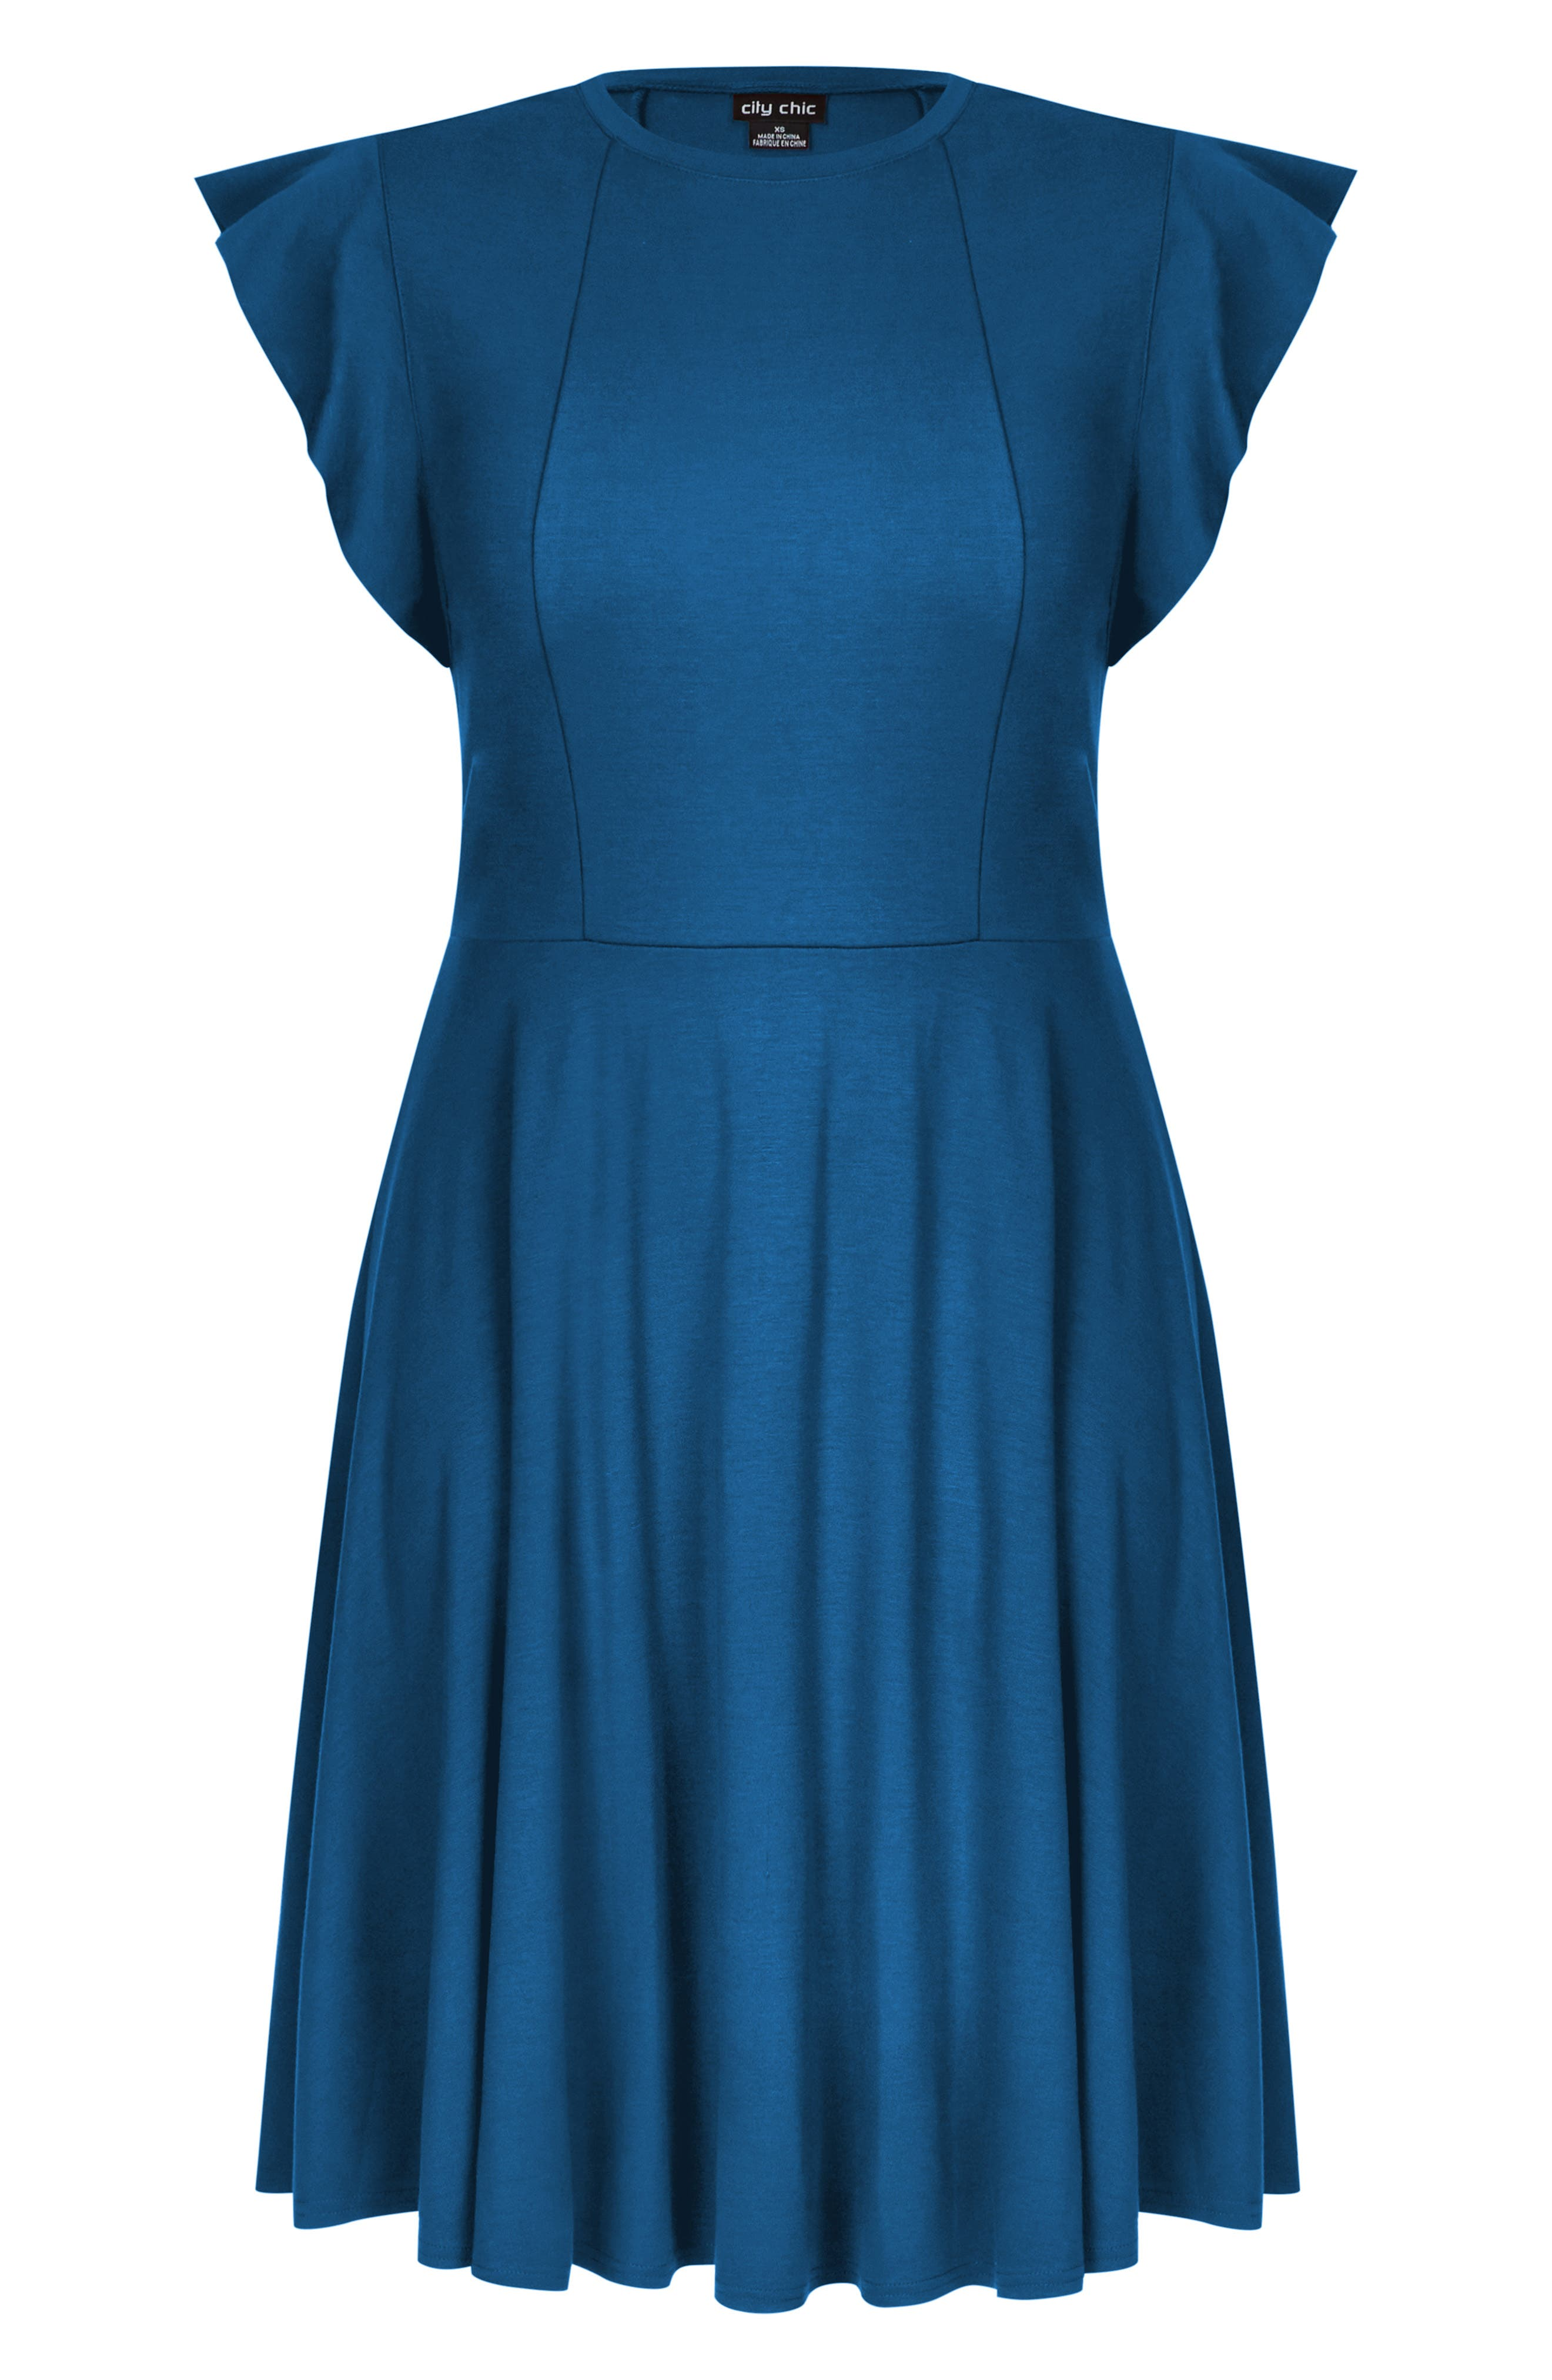 Frill Sleeve Fit & Flare Dress,                             Alternate thumbnail 3, color,                             TEAL